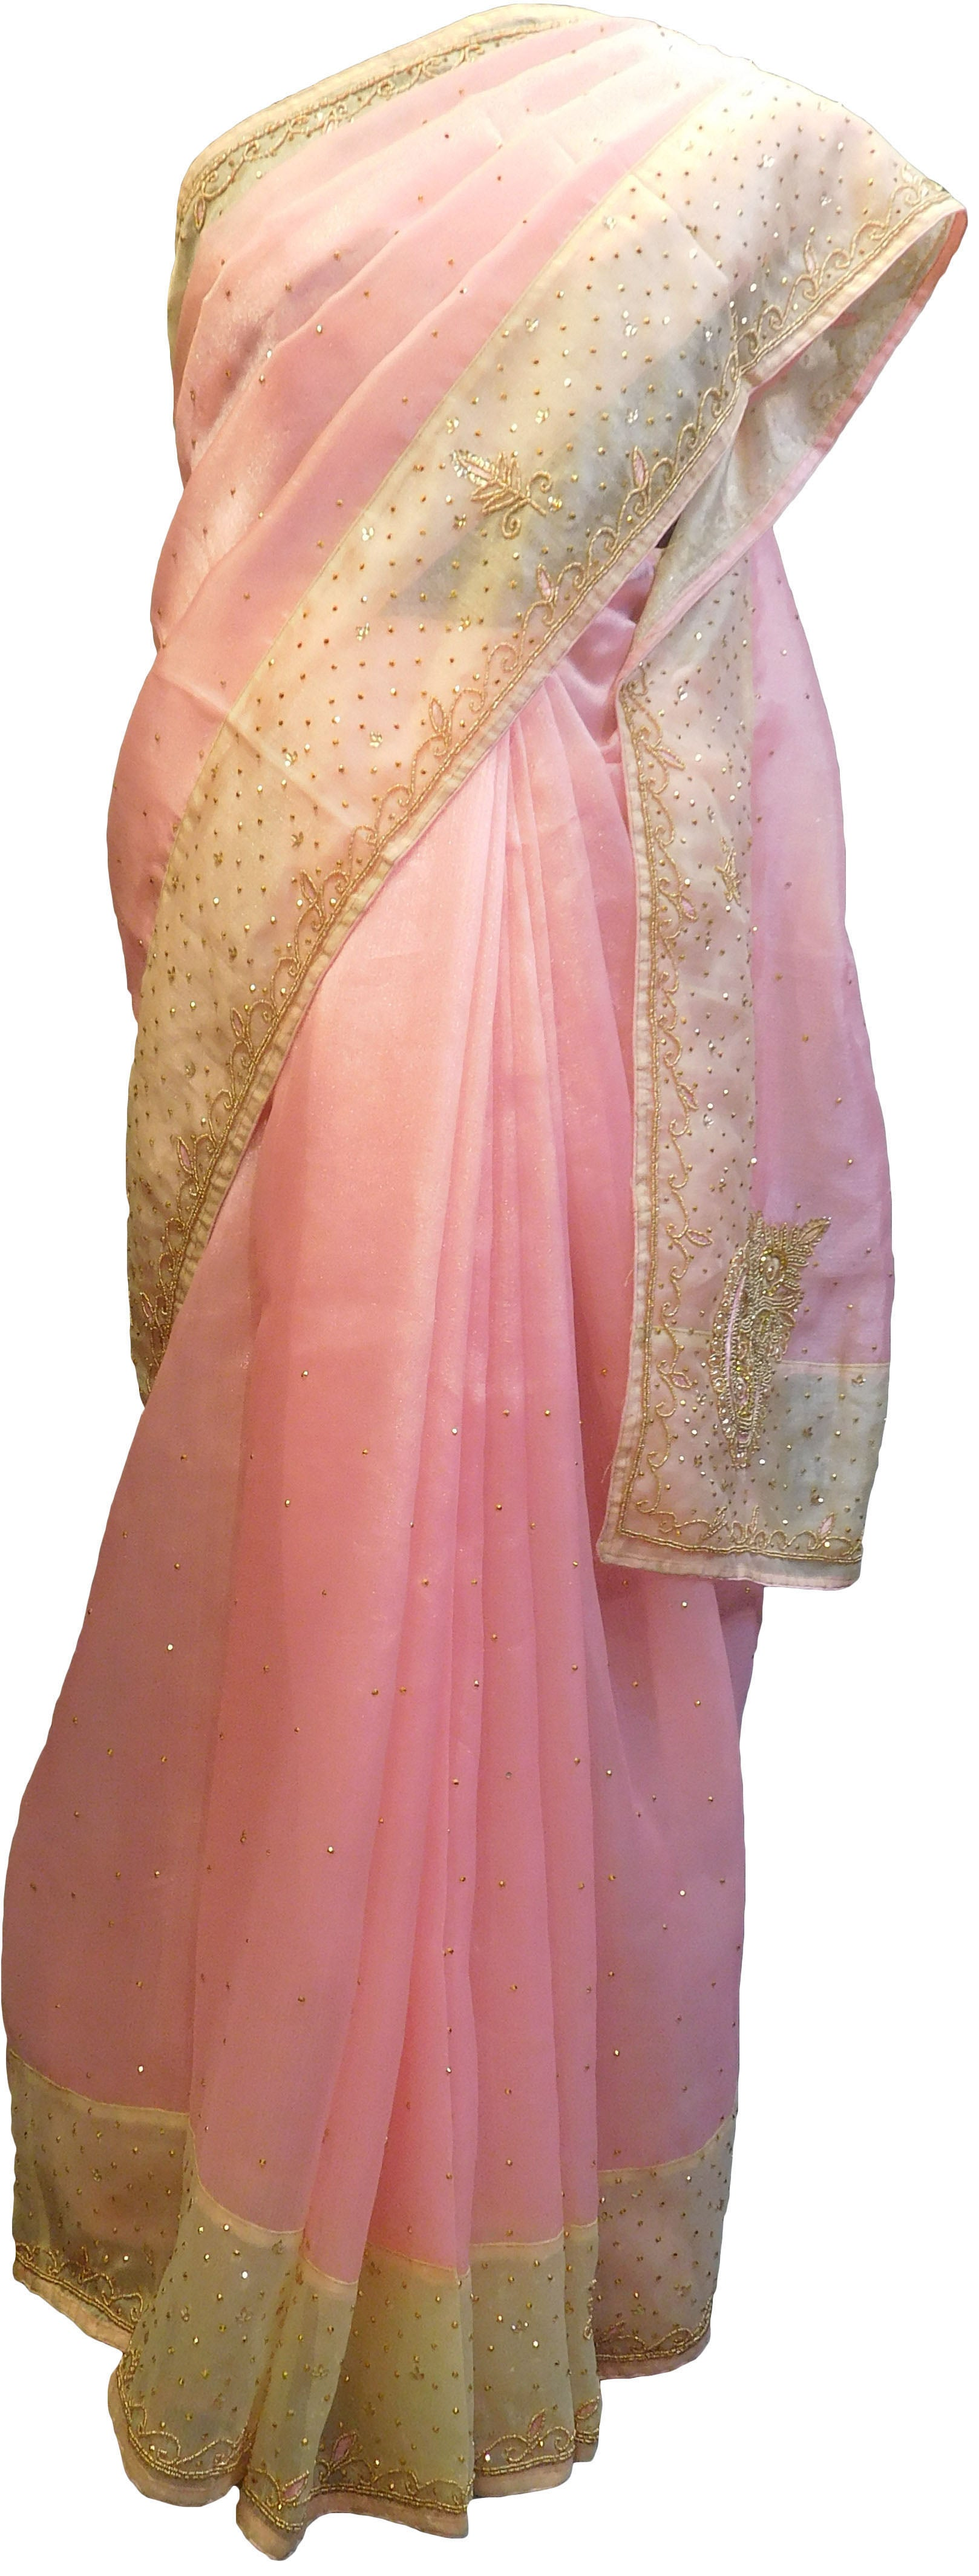 SMSAREE Pink & Beige Designer Wedding Partywear Organza Stone Thread & Beads Hand Embroidery Work Bridal Saree Sari With Blouse Piece F097